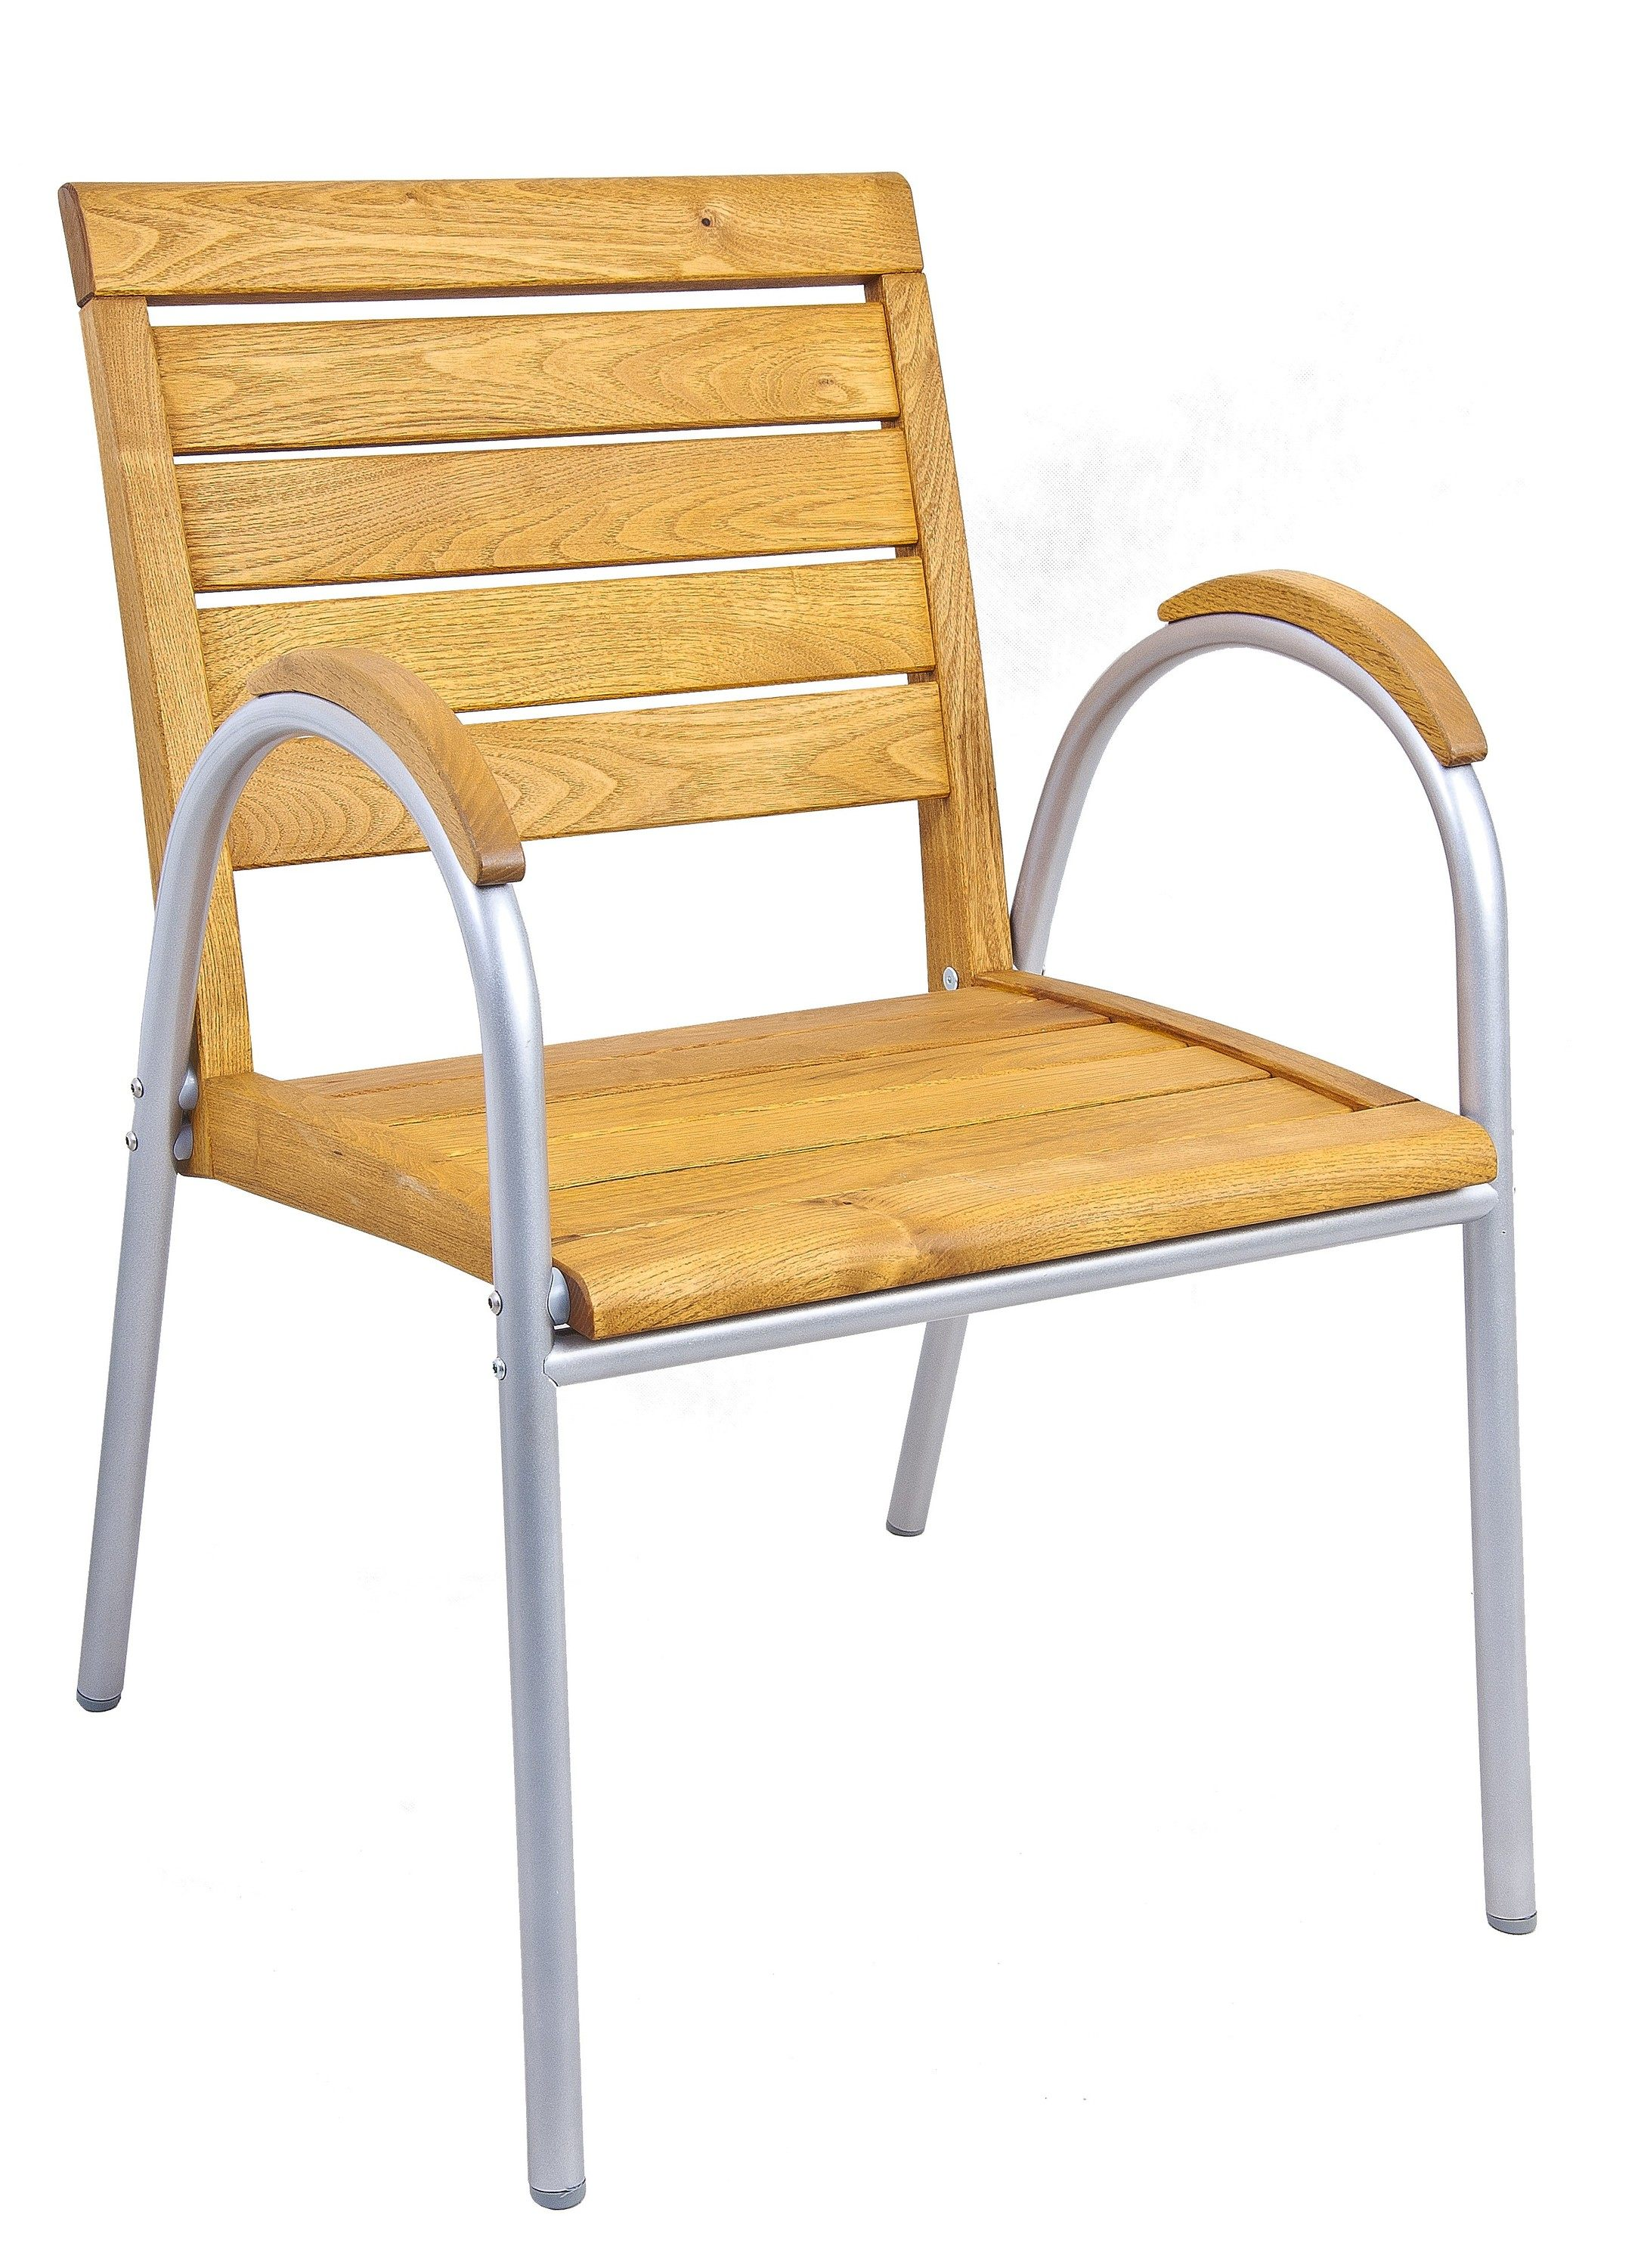 <p>Outdoor Furniture – Metal & Wooden Dining Collection – Terrazza Armchair.</p> <p> </p> <p>Terrazza Furniture – Armchair with hardwood seat armrests and backrest.</p> <p> </p> <p>Ideally suited for either indoor or outdoor relaxed dining location in pubs or restaurants or more intimate café bistro al fresco area</p>